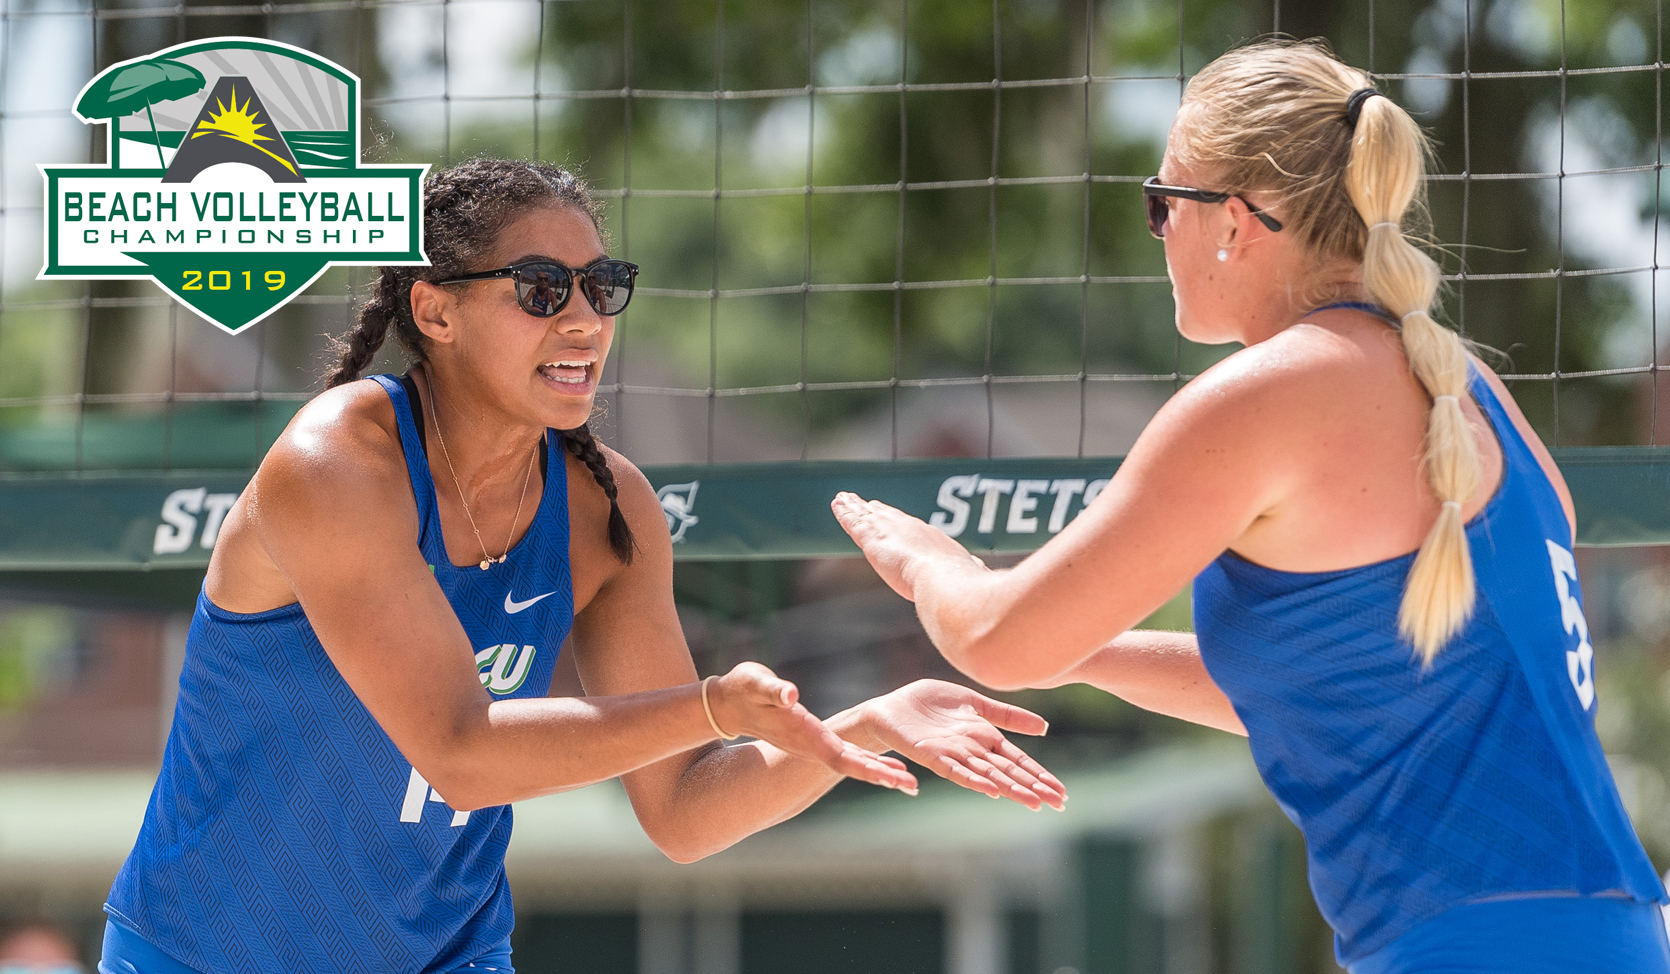 FGCU Defeats North Alabama to Advance in #ASUNBVB Championship